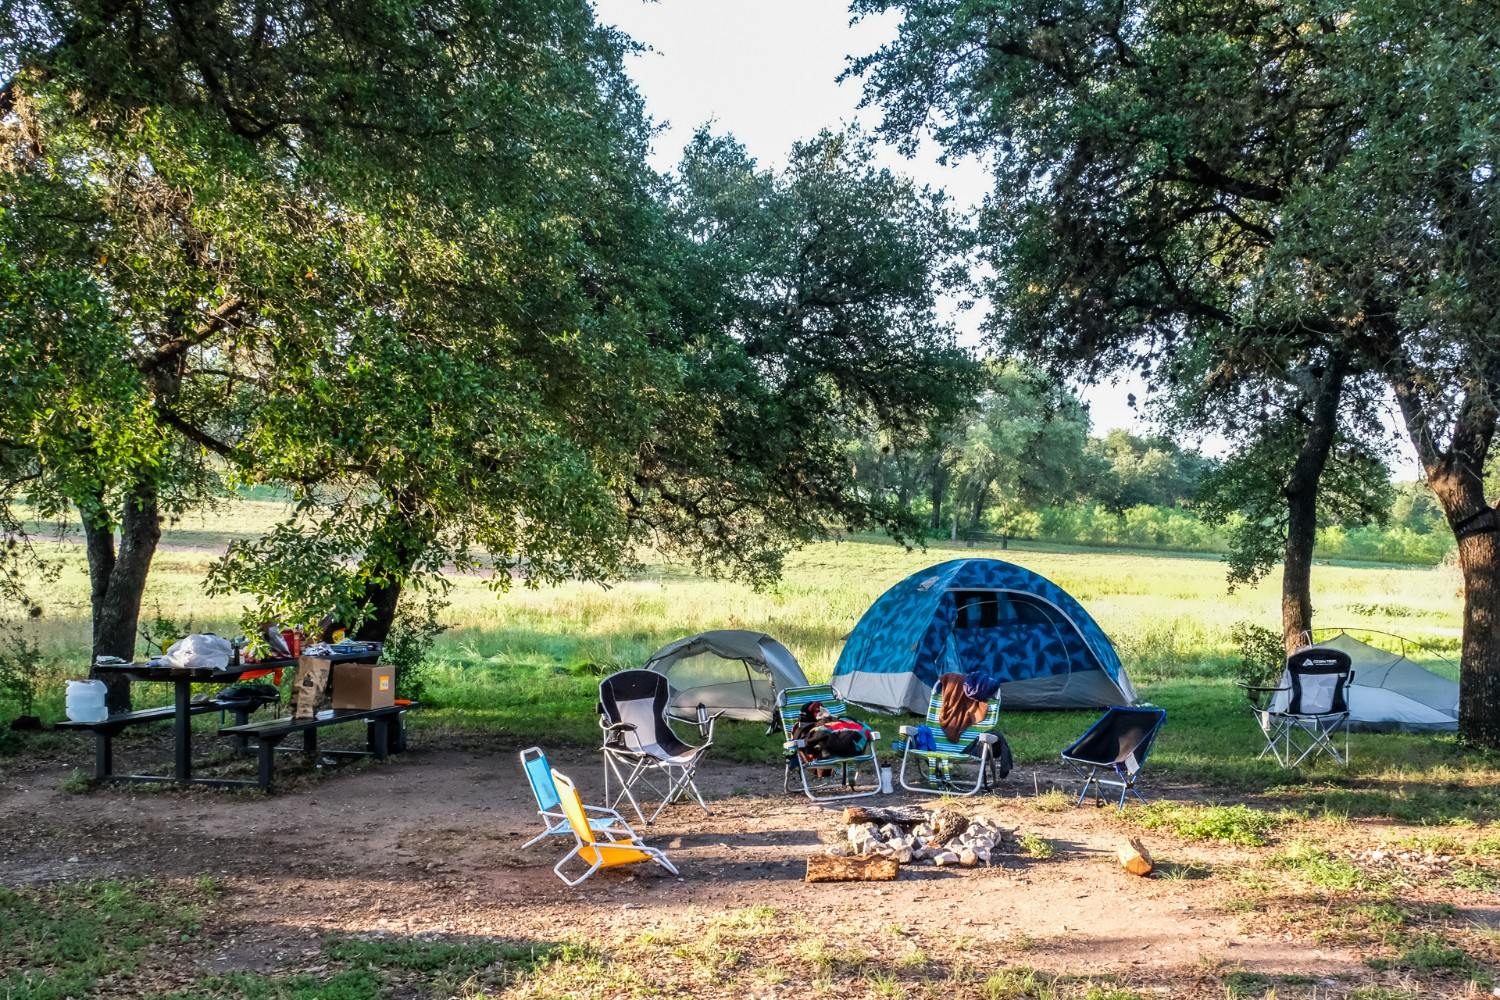 Camping tent set up in a park